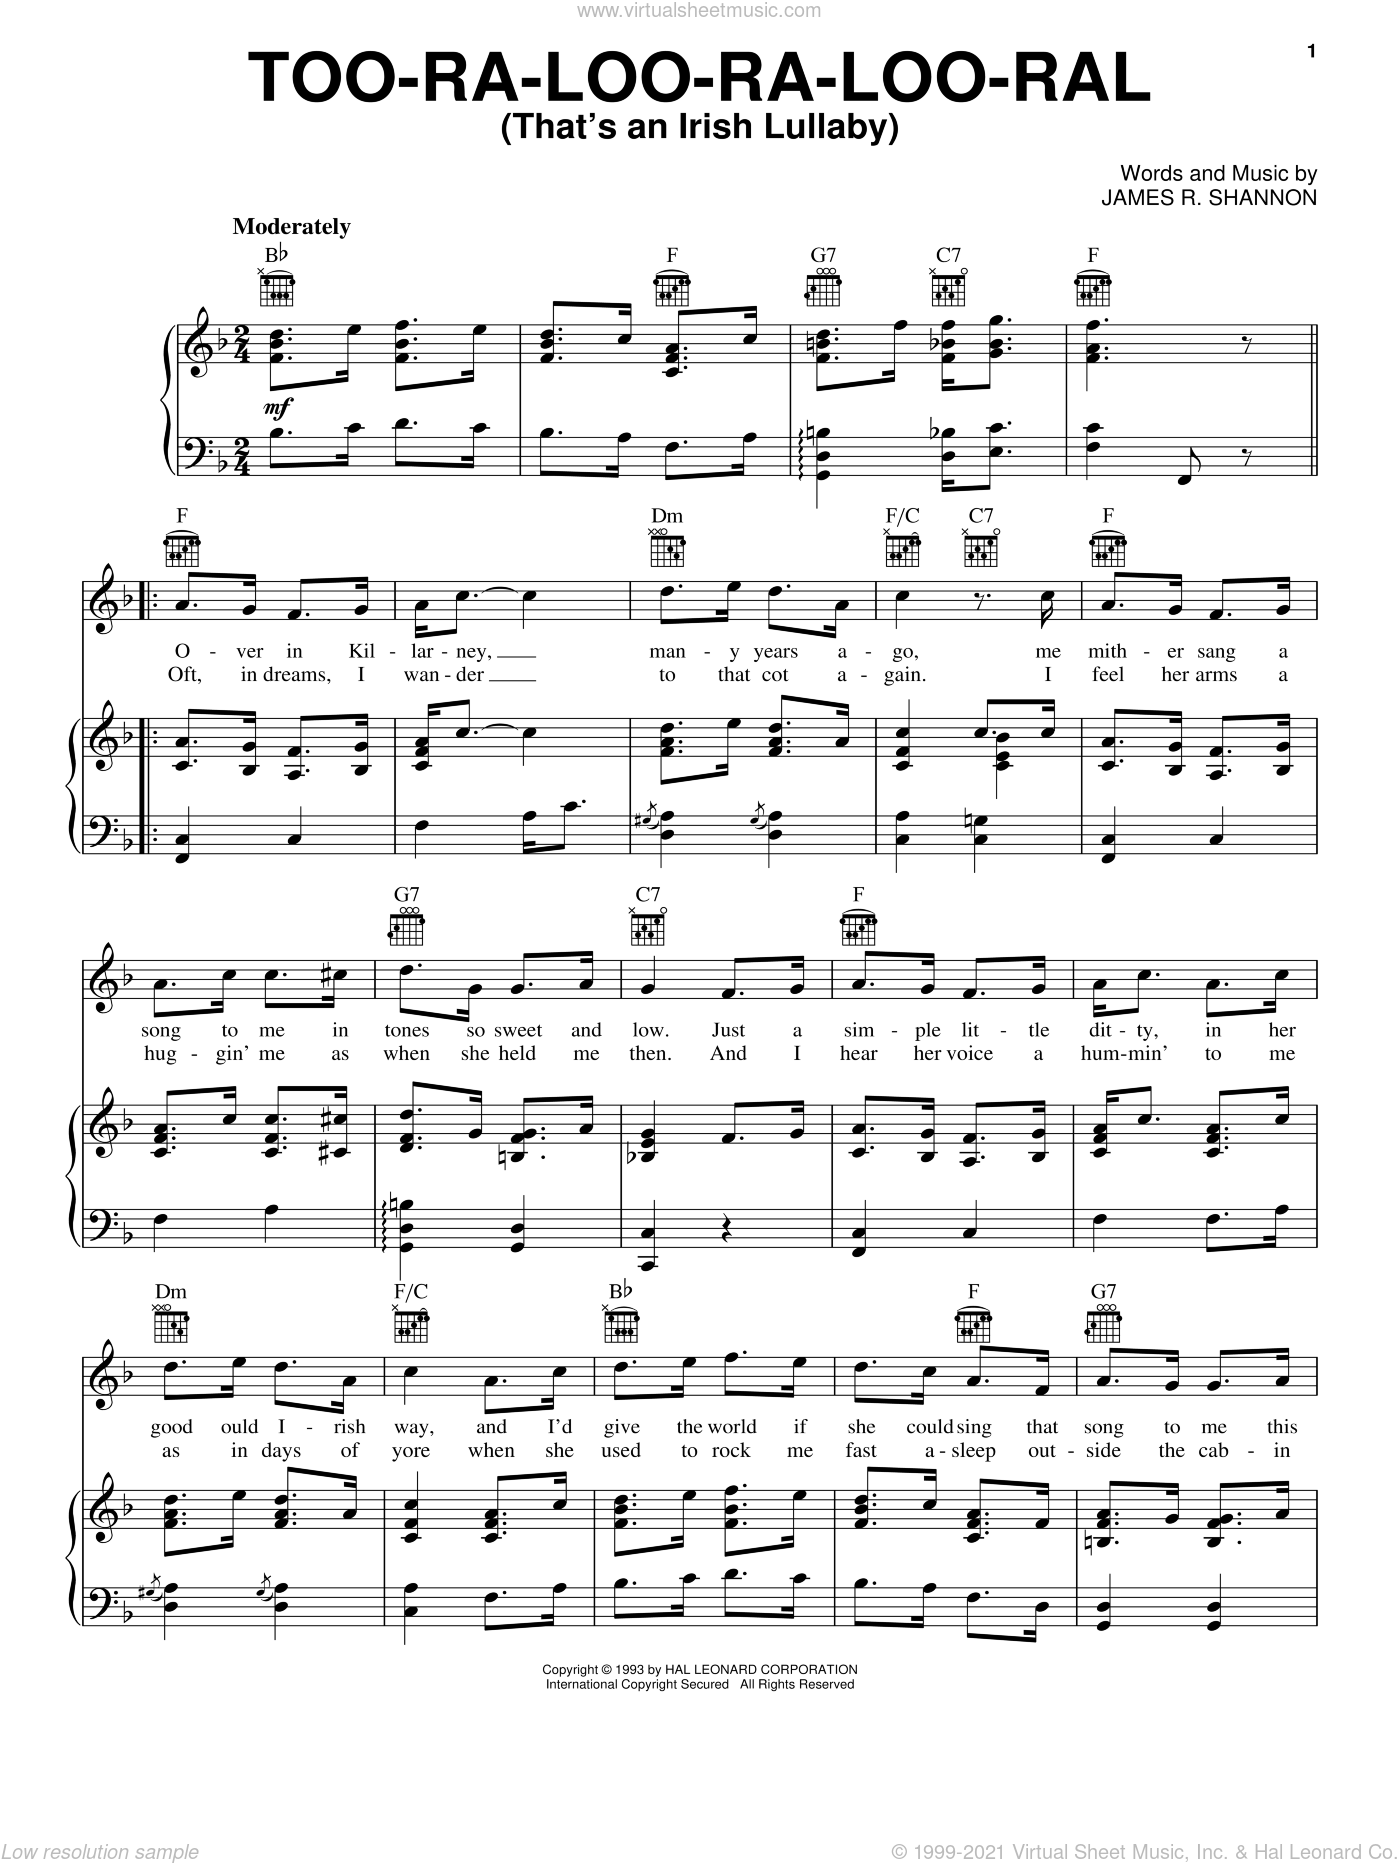 Too-Ra-Loo-Ra-Loo-Ral (That's An Irish Lullaby) sheet music for voice, piano or guitar by James R. Shannon